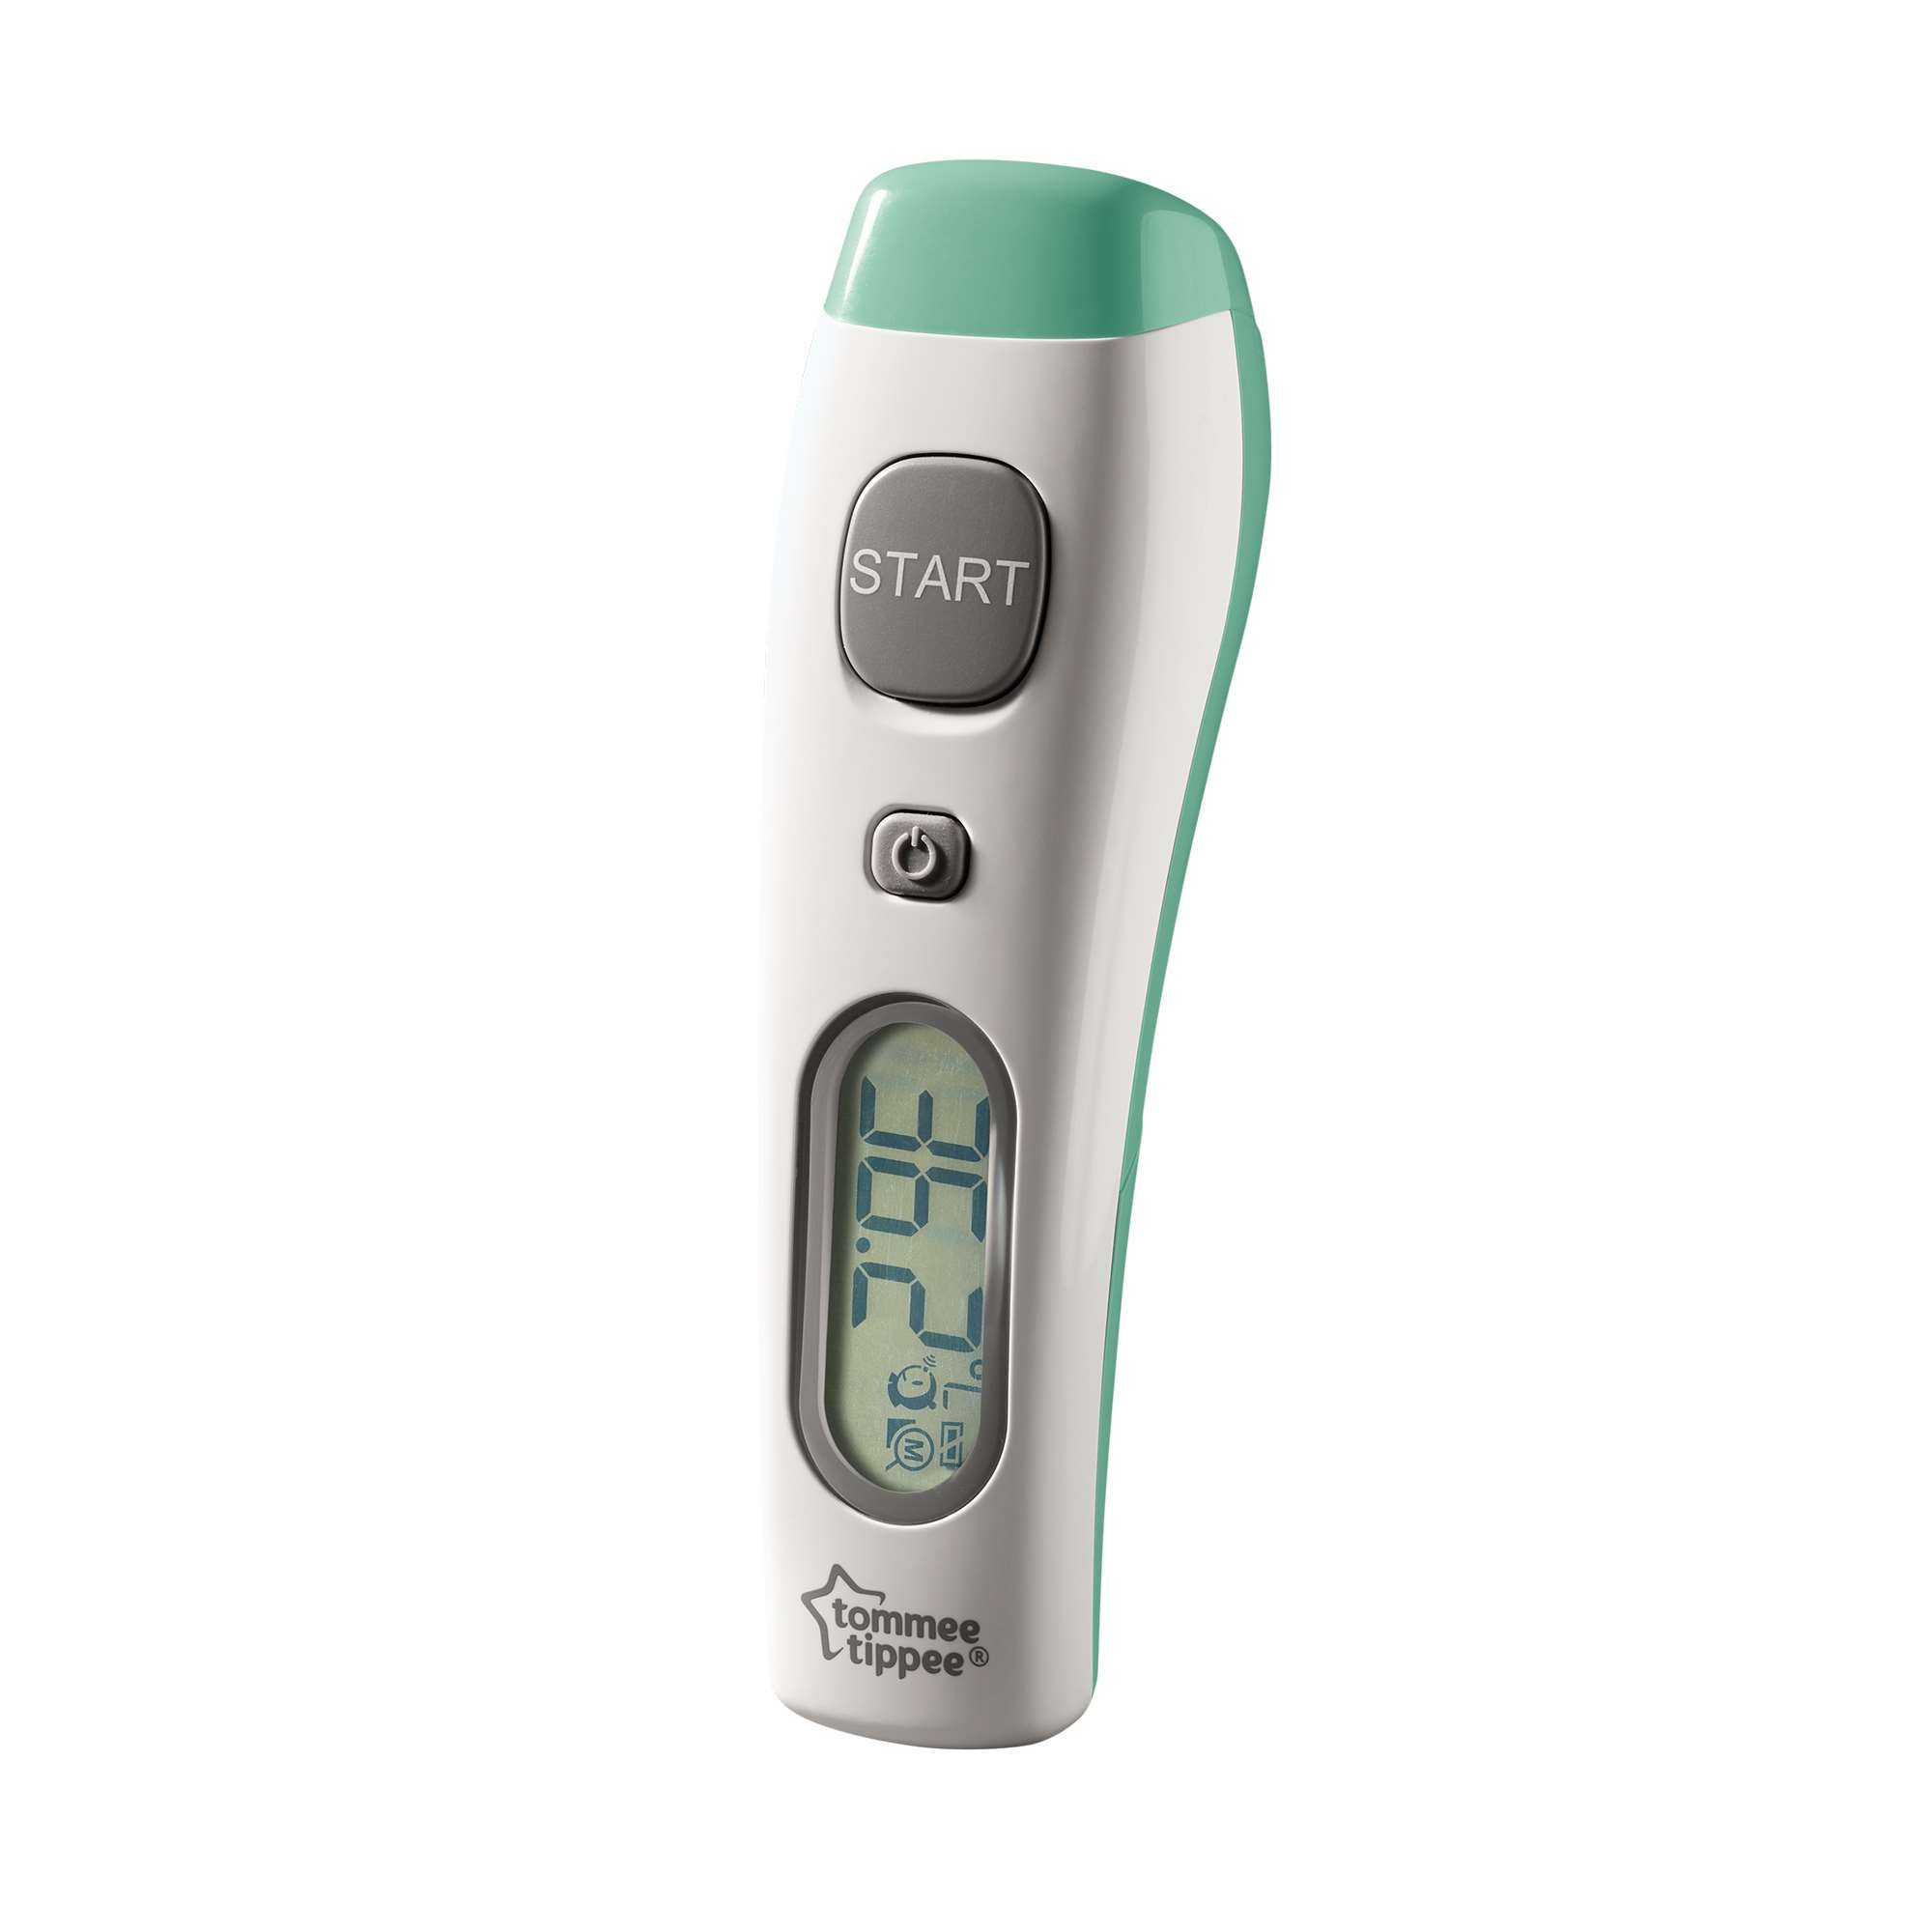 digital no touch thermometer, side on